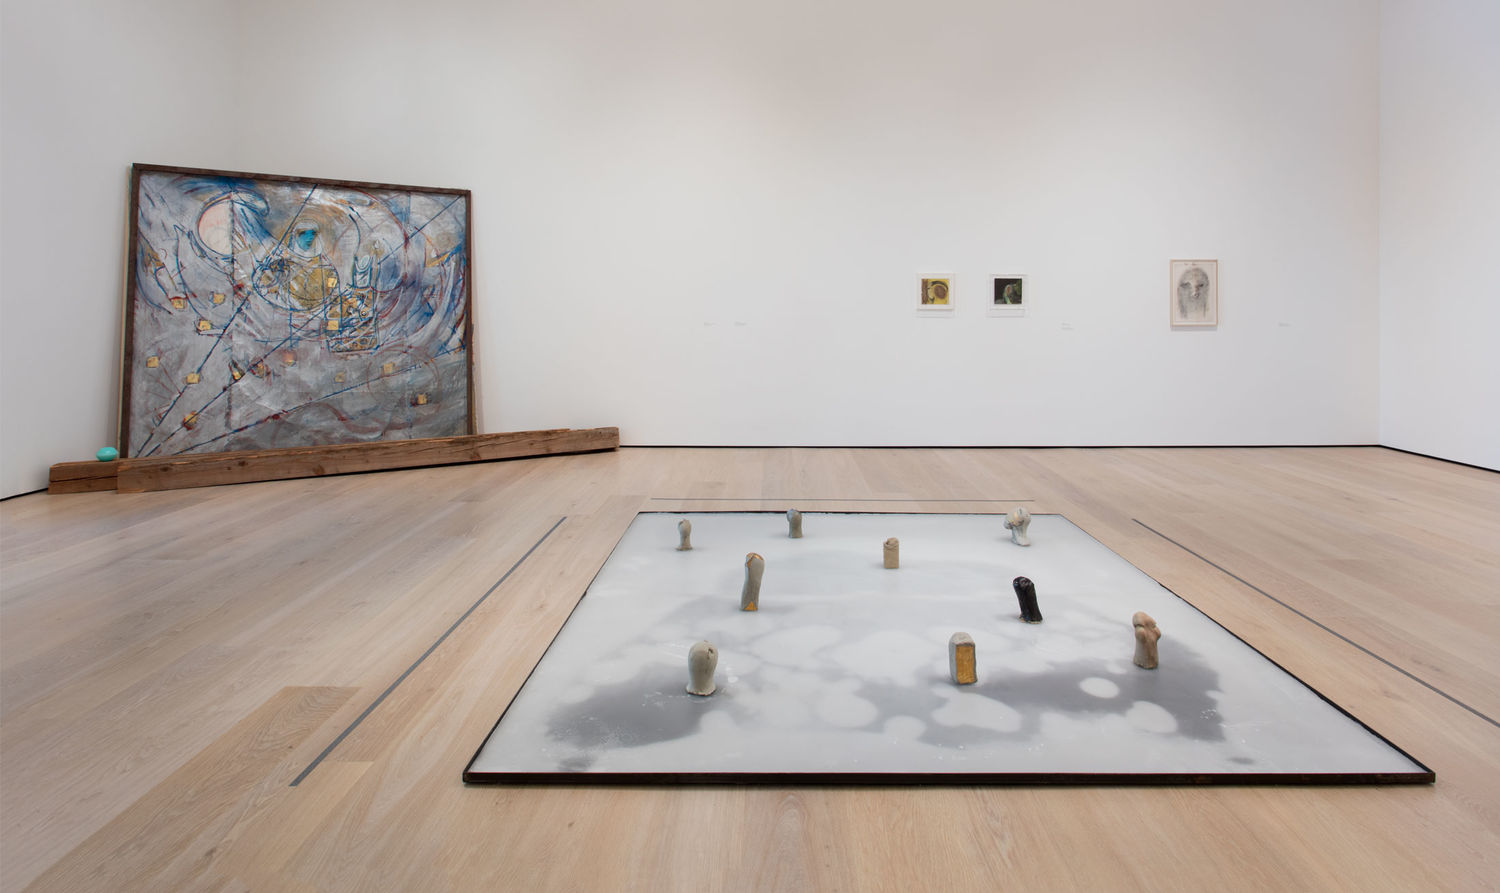 Marisa Merz: The Sky Is a Great Space. Installation view, Hammer Museum, Los Angeles, June 4–August 20, 2017. Photo: Brian Forrest.